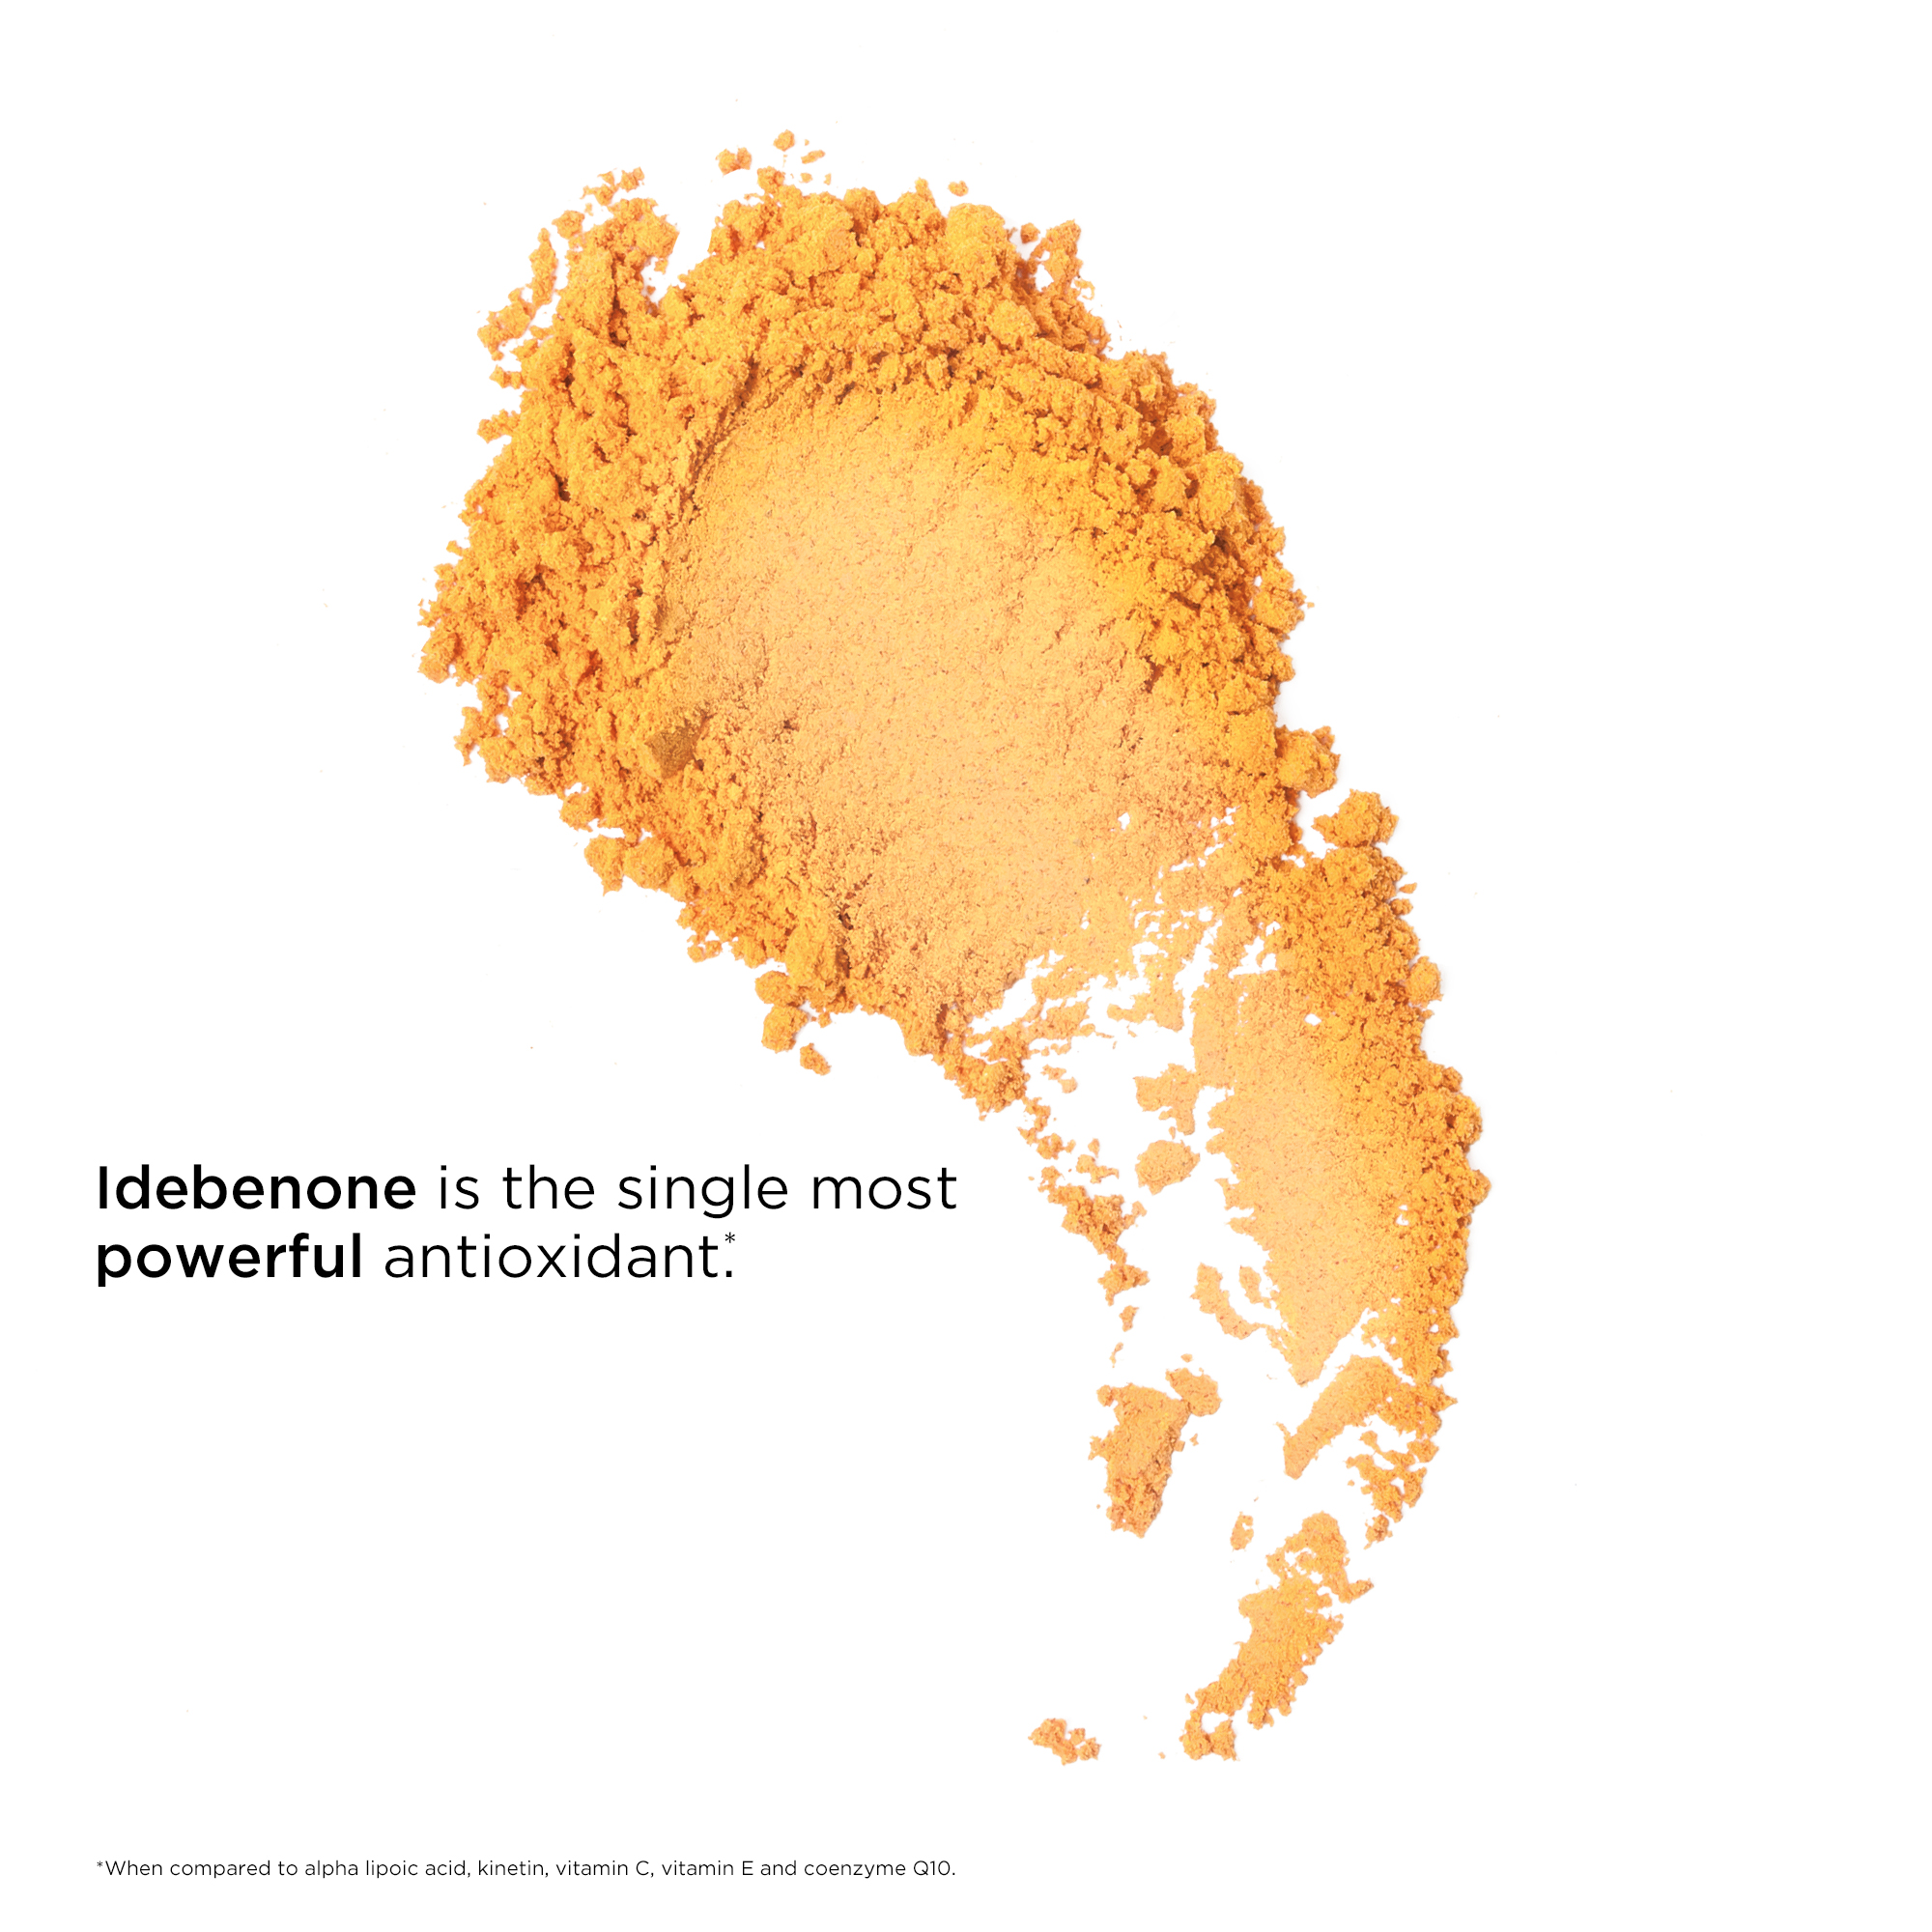 Idebenone is the single most powerful antioxidant when compared to alpha lipoic acid, kinetin, vitamin C, vitamin E and coenzyme Q10.